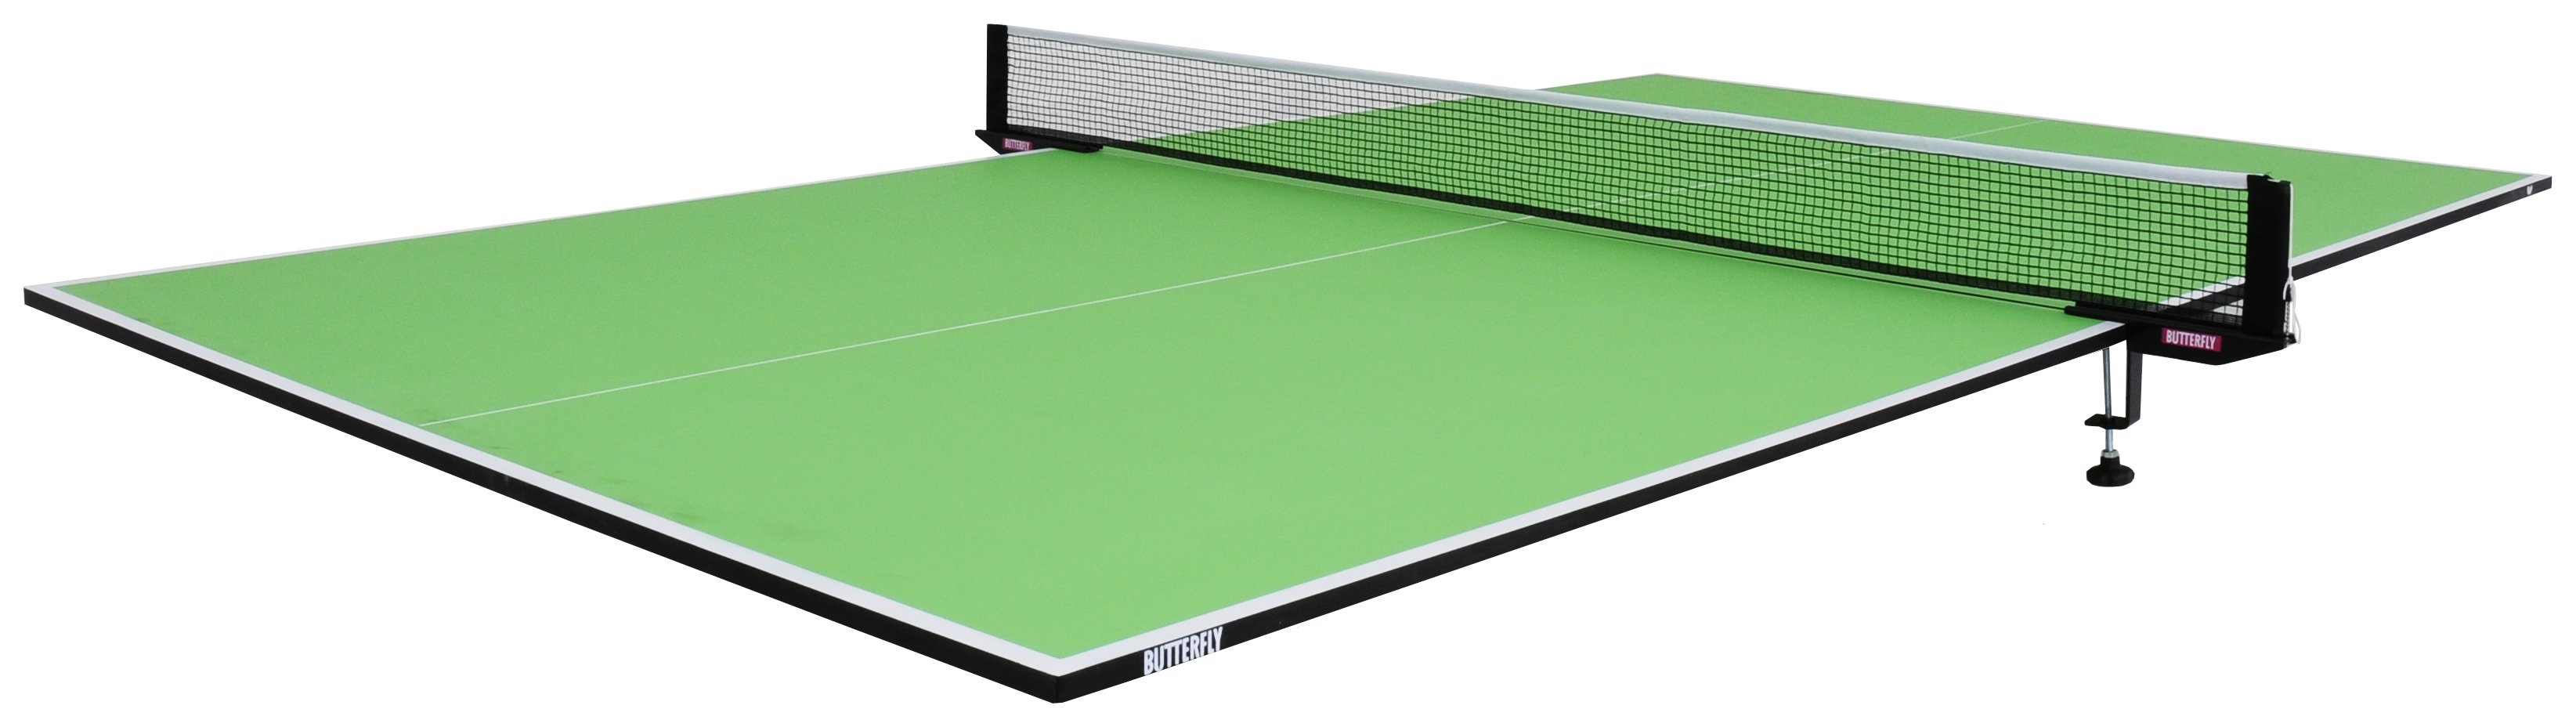 Image of Butterfly - Table Tennis Table Top - Green